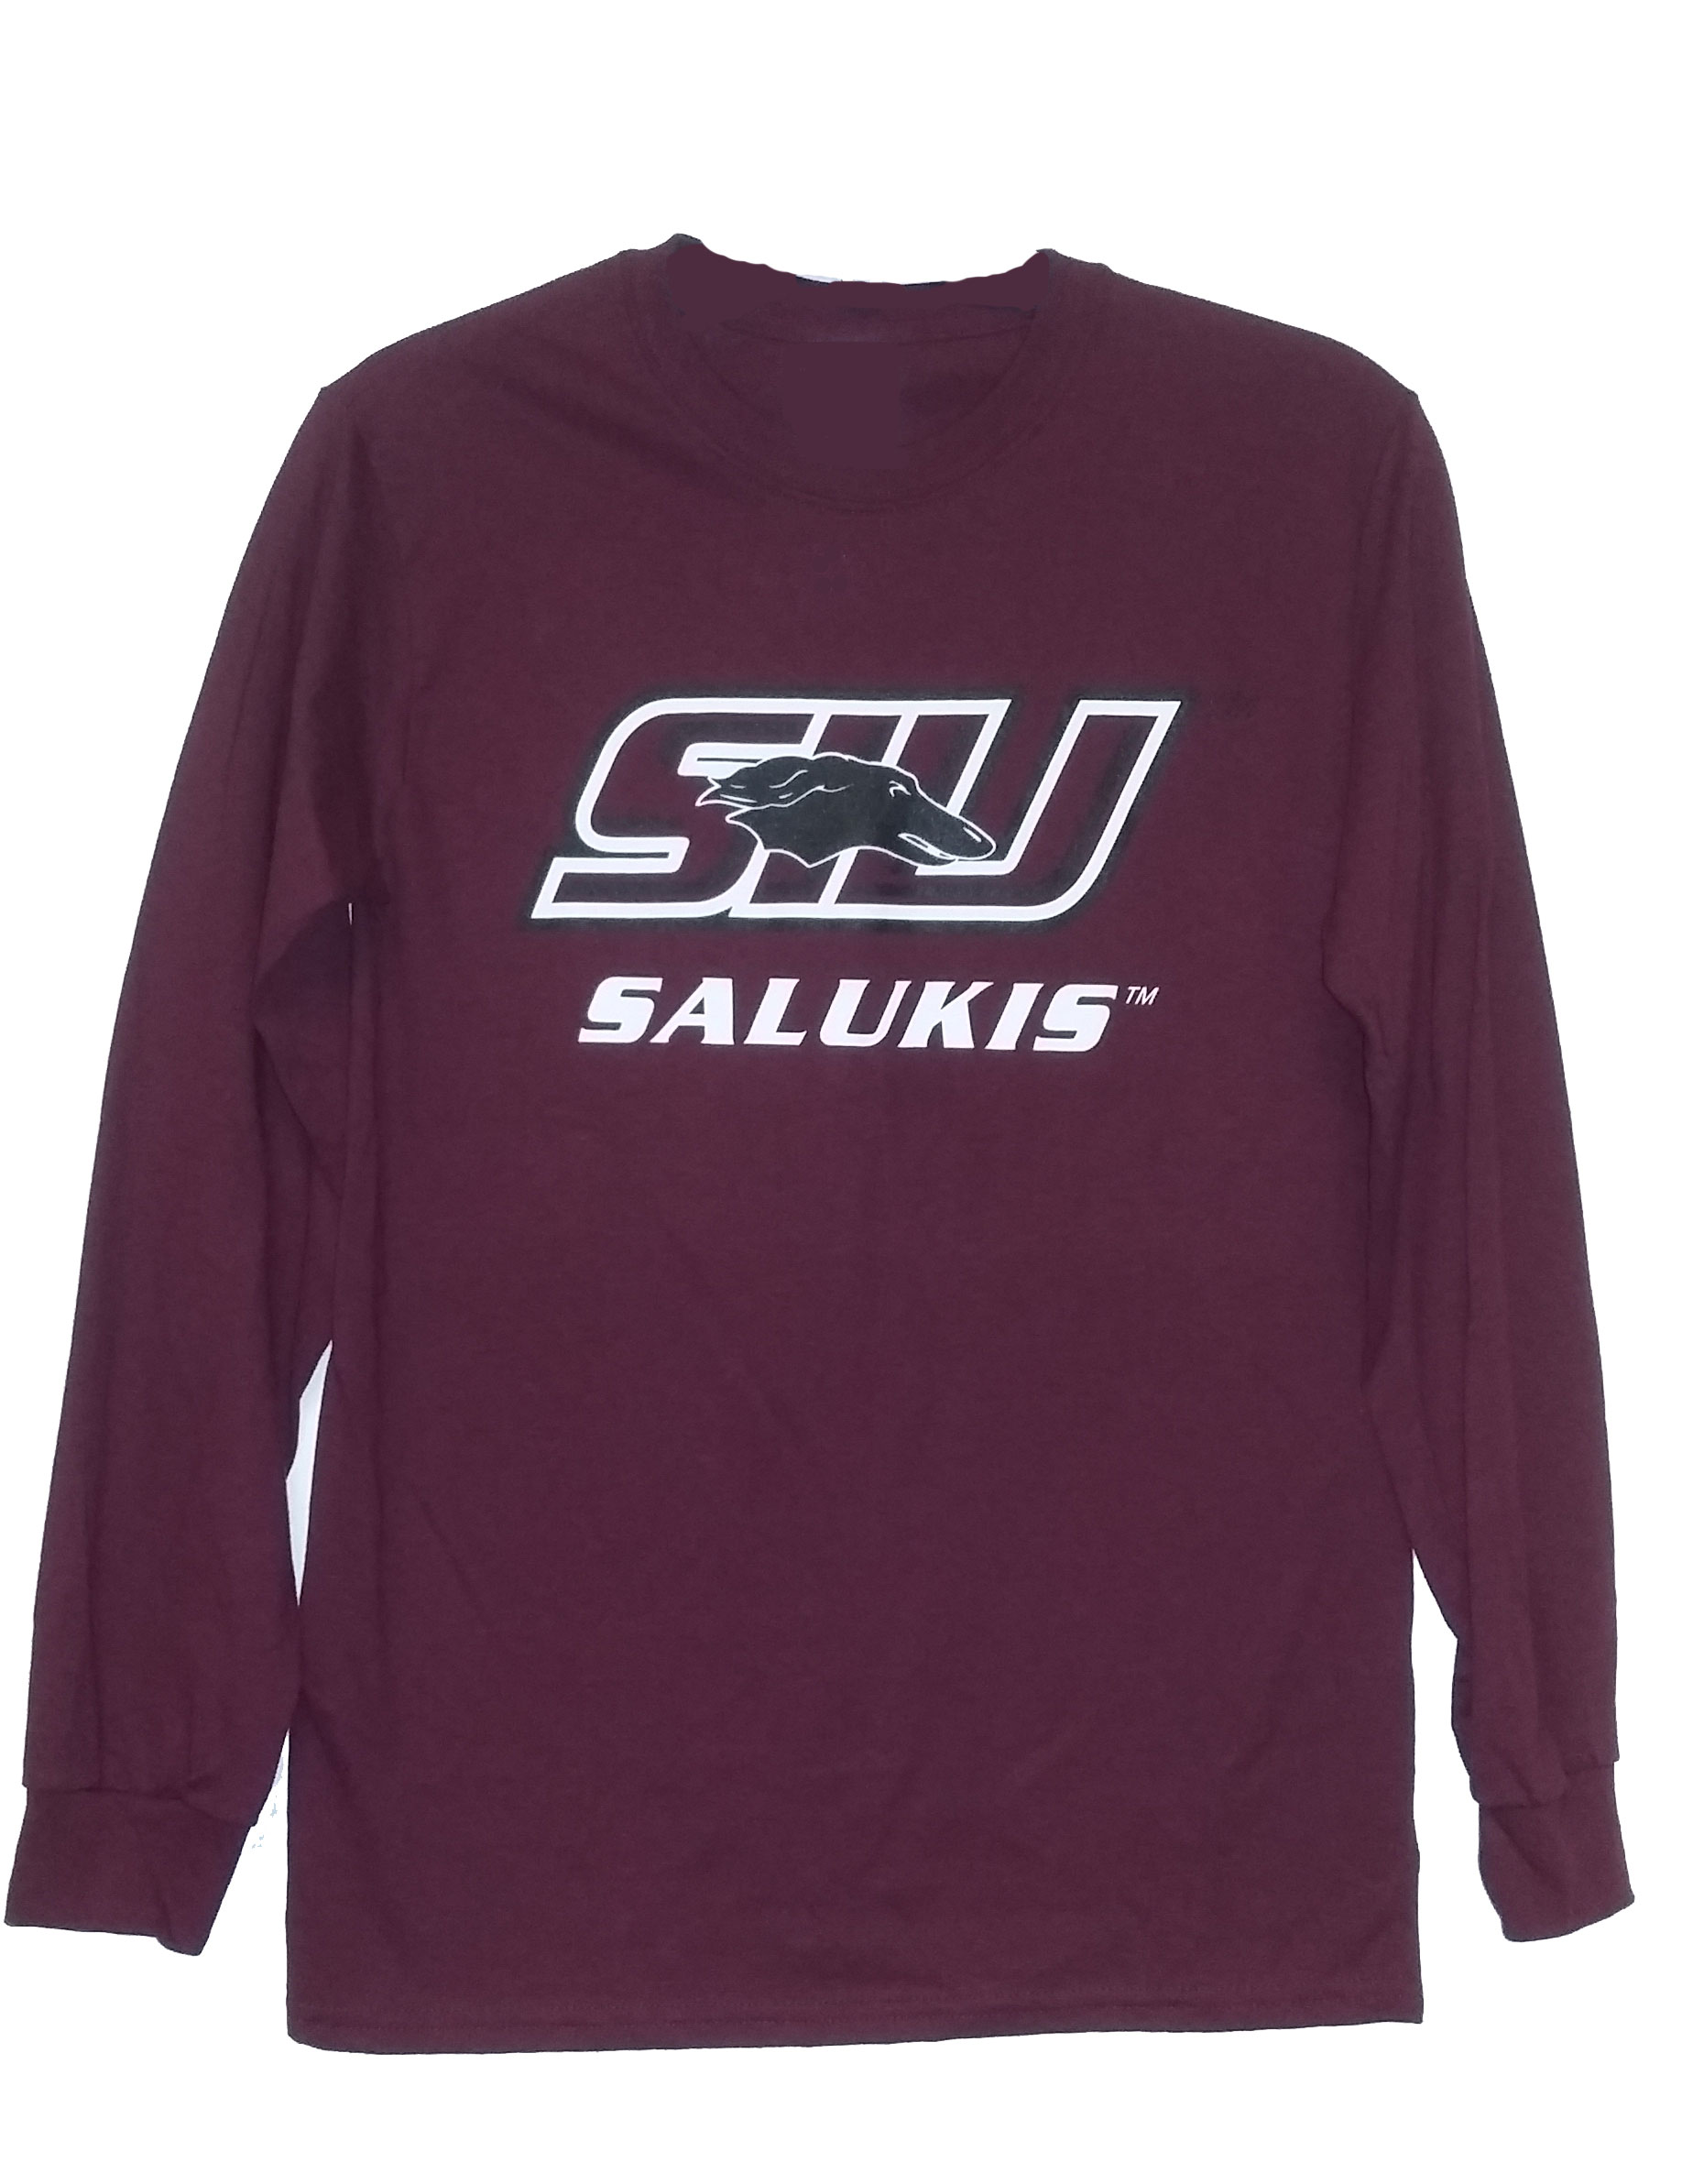 Image for the PROMO® SIU SALUKIS MAROON LONG SLEEVE T-SHIRT product